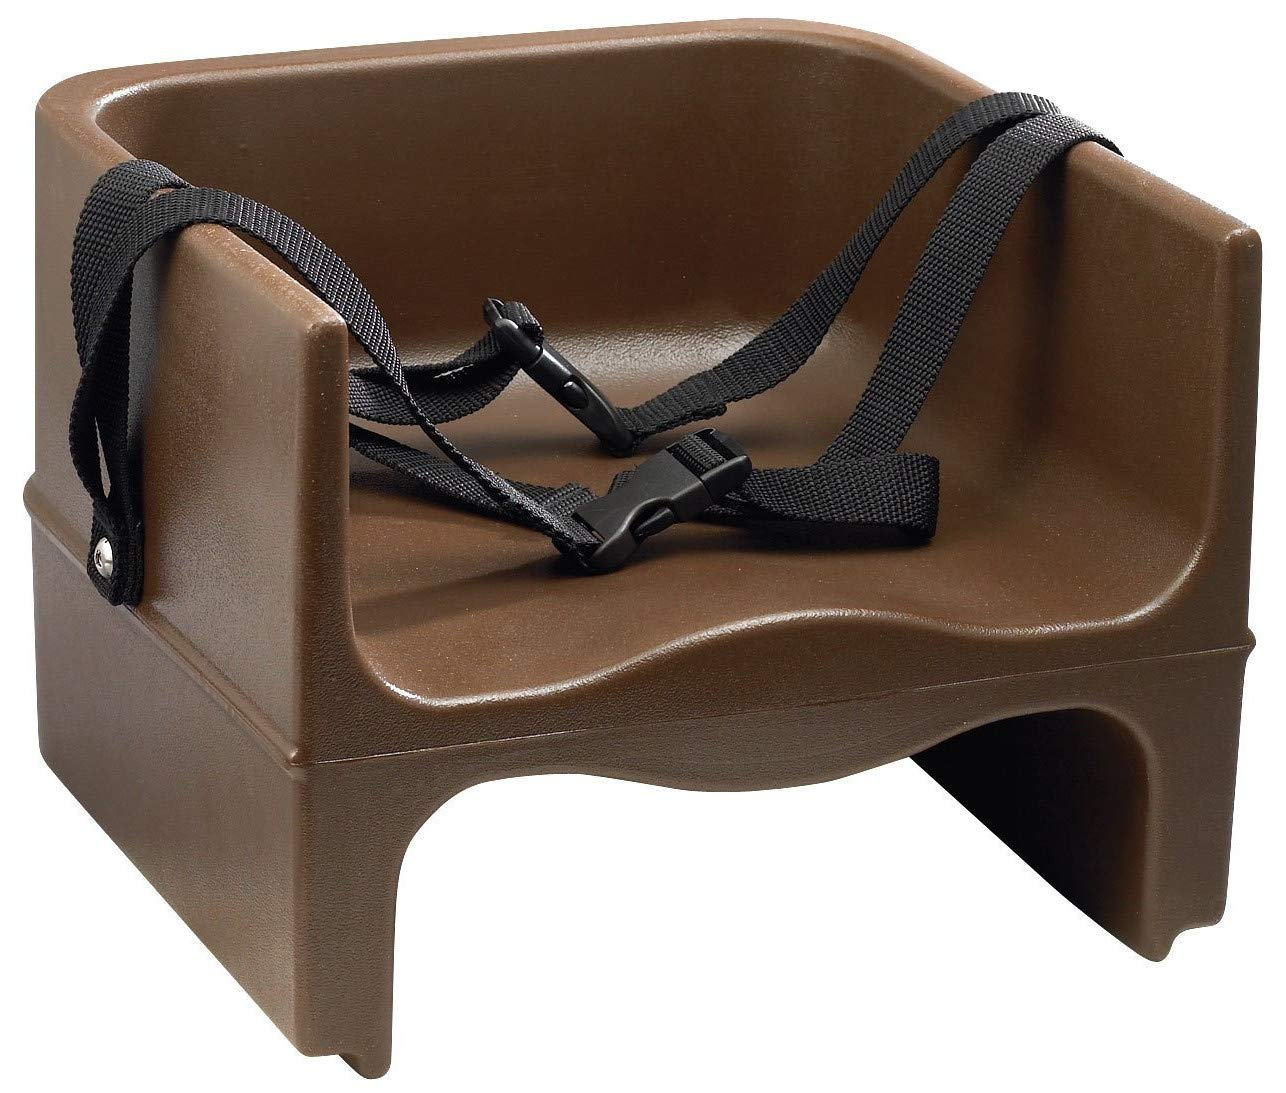 Child Booster Seat for Table Brown Backless for Kids High Chair Dining for Table Harness Toddler & E Book by Easy2Find.